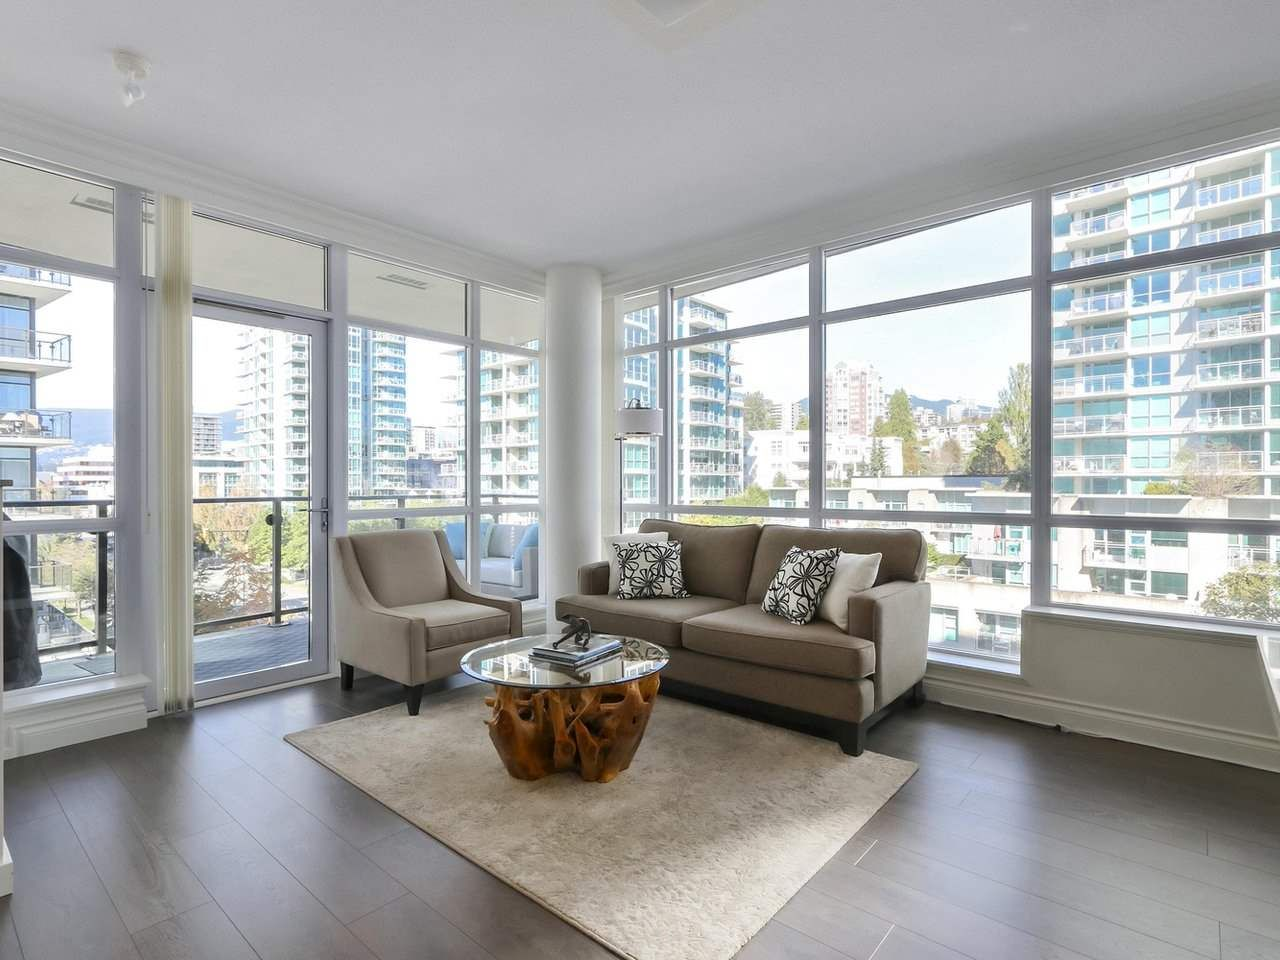 """Photo 2: Photos: 608 172 VICTORY SHIP Way in North Vancouver: Lower Lonsdale Condo for sale in """"Atrium at the Pier"""" : MLS®# R2454404"""